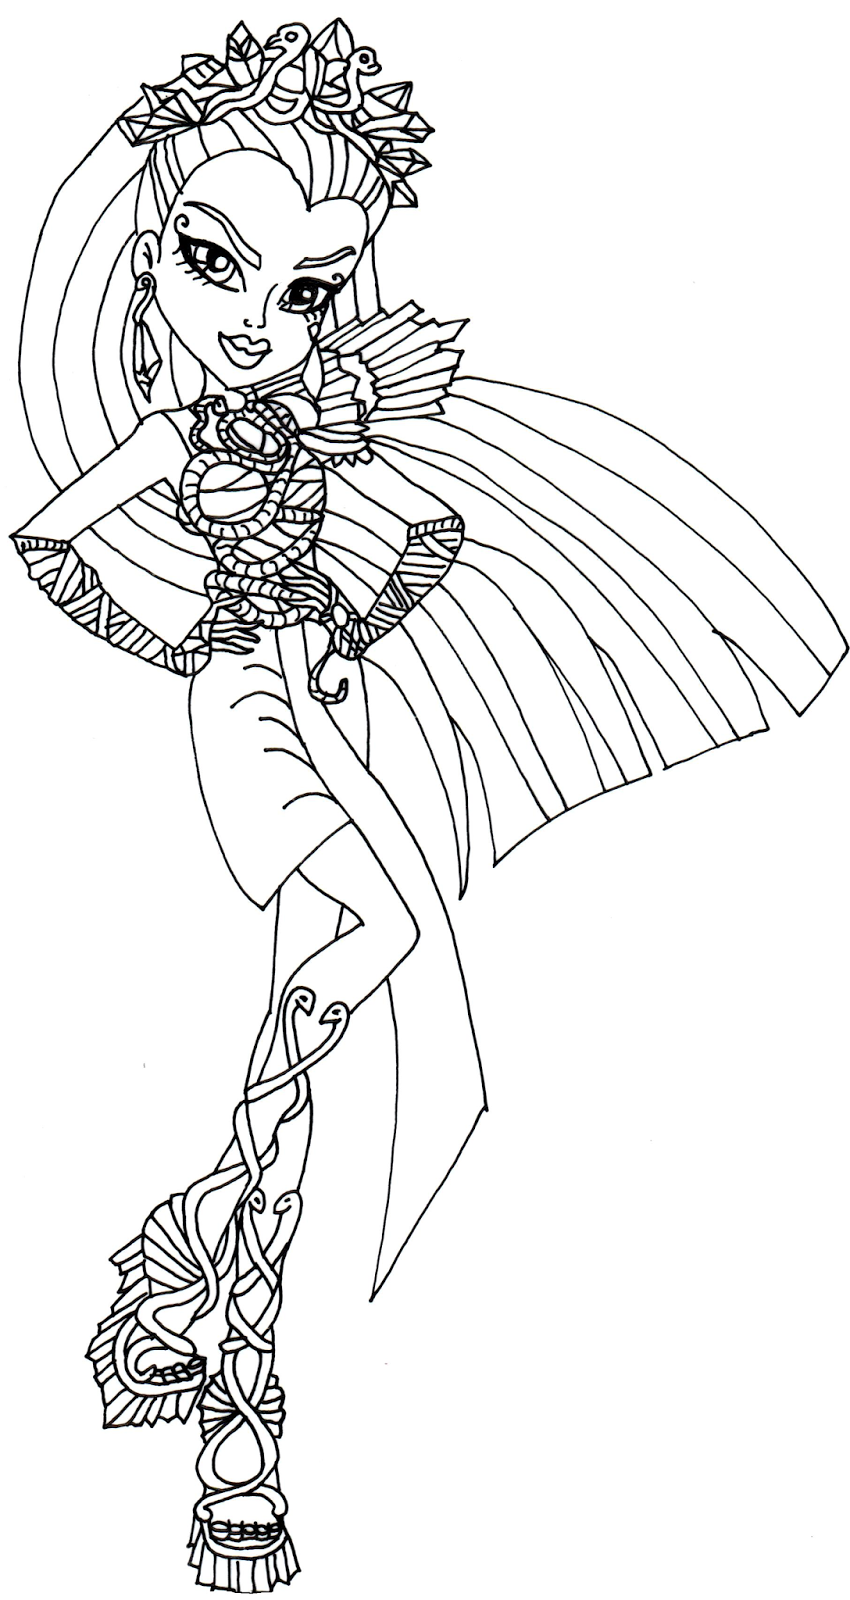 Free Printable Monster High Coloring Pages Nefera De Nile High Coloring Pages Free